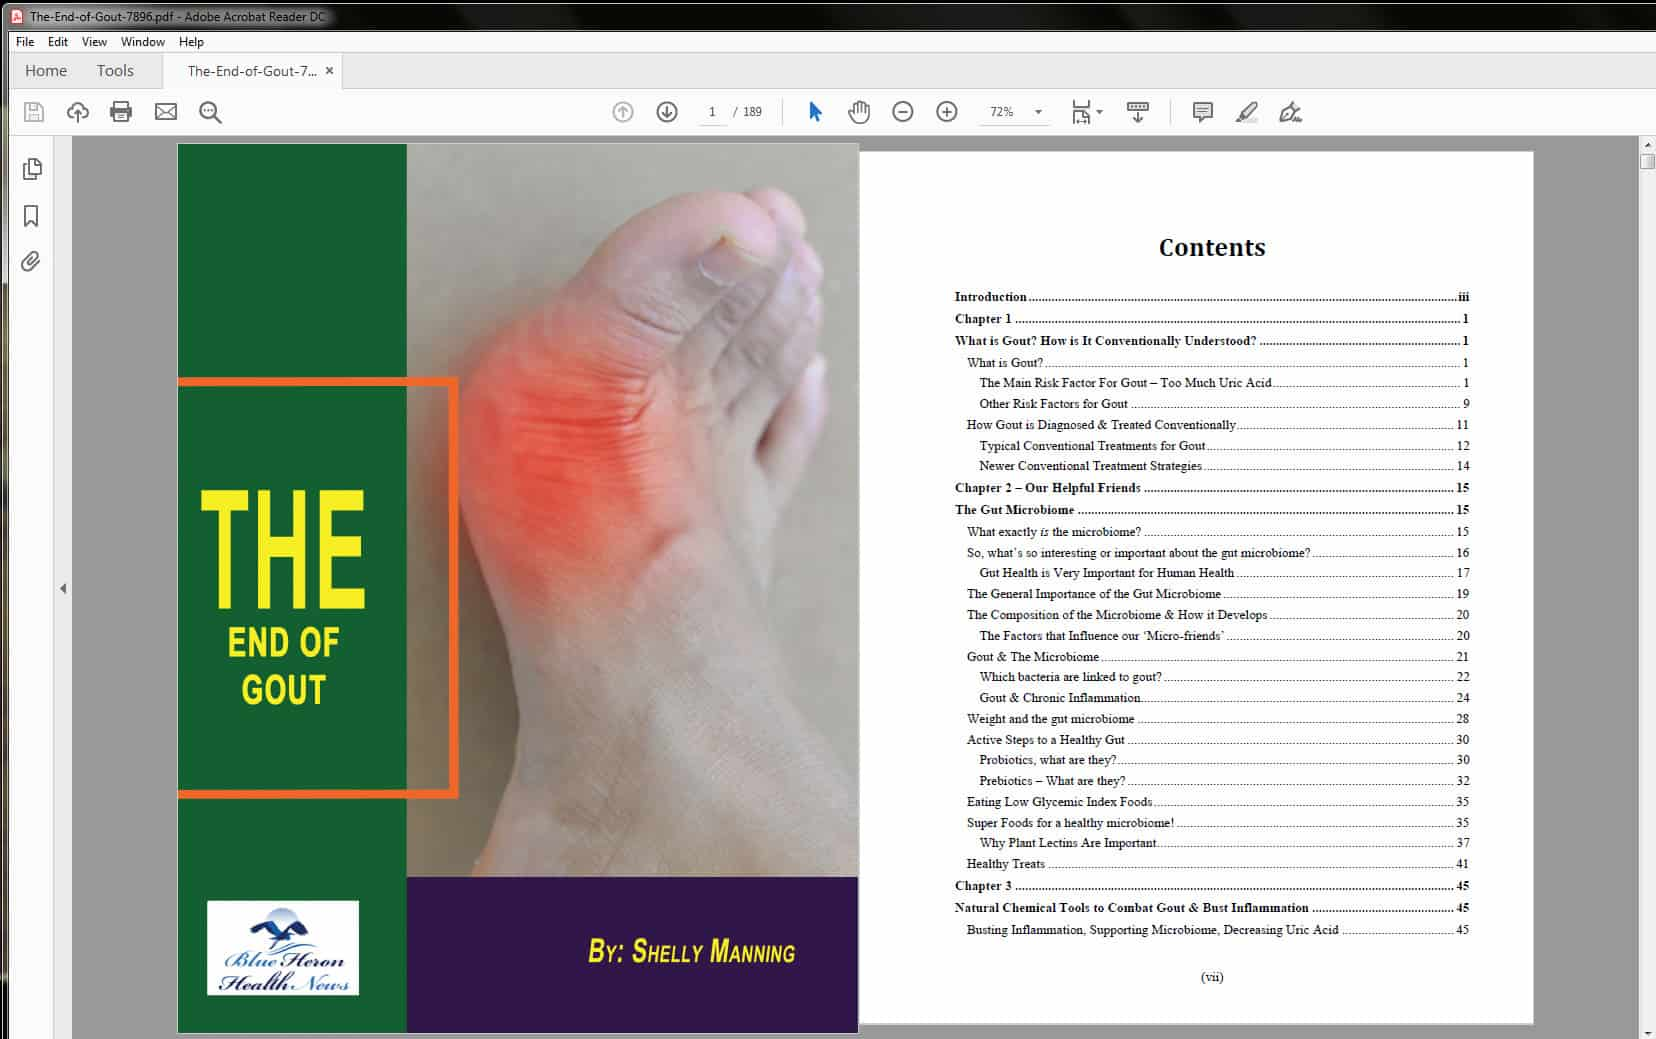 The End of Gout Table of Contents